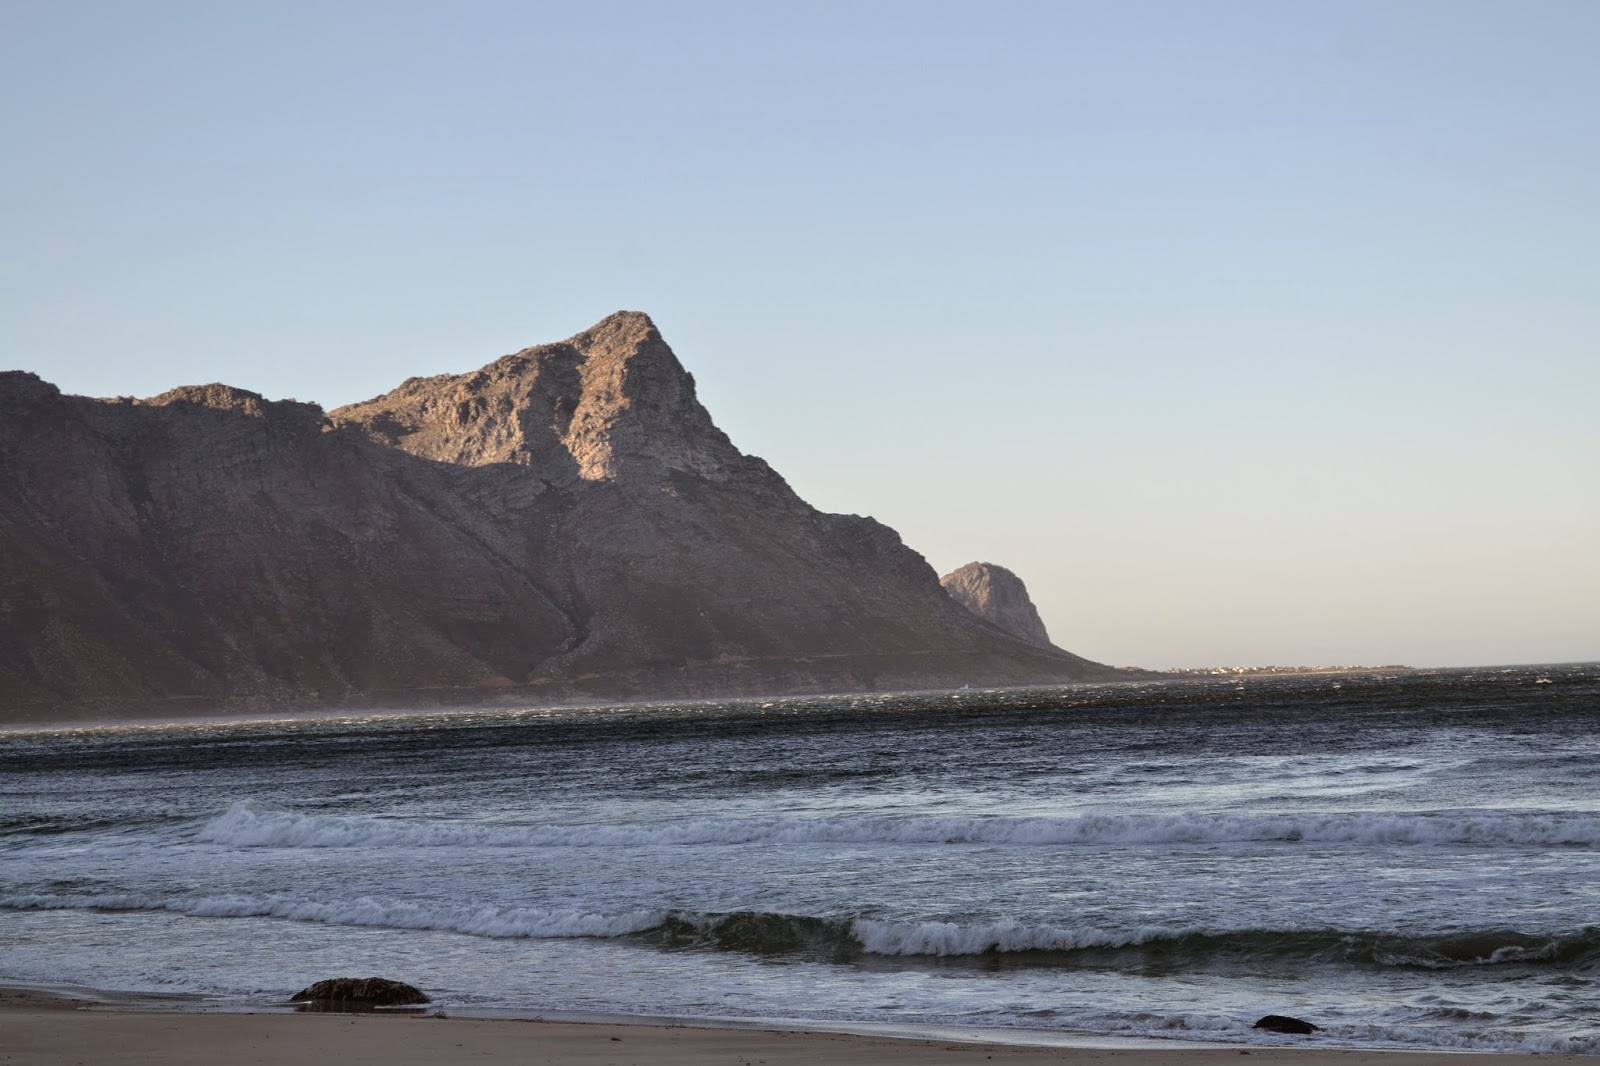 Early morning beach and mountain scene